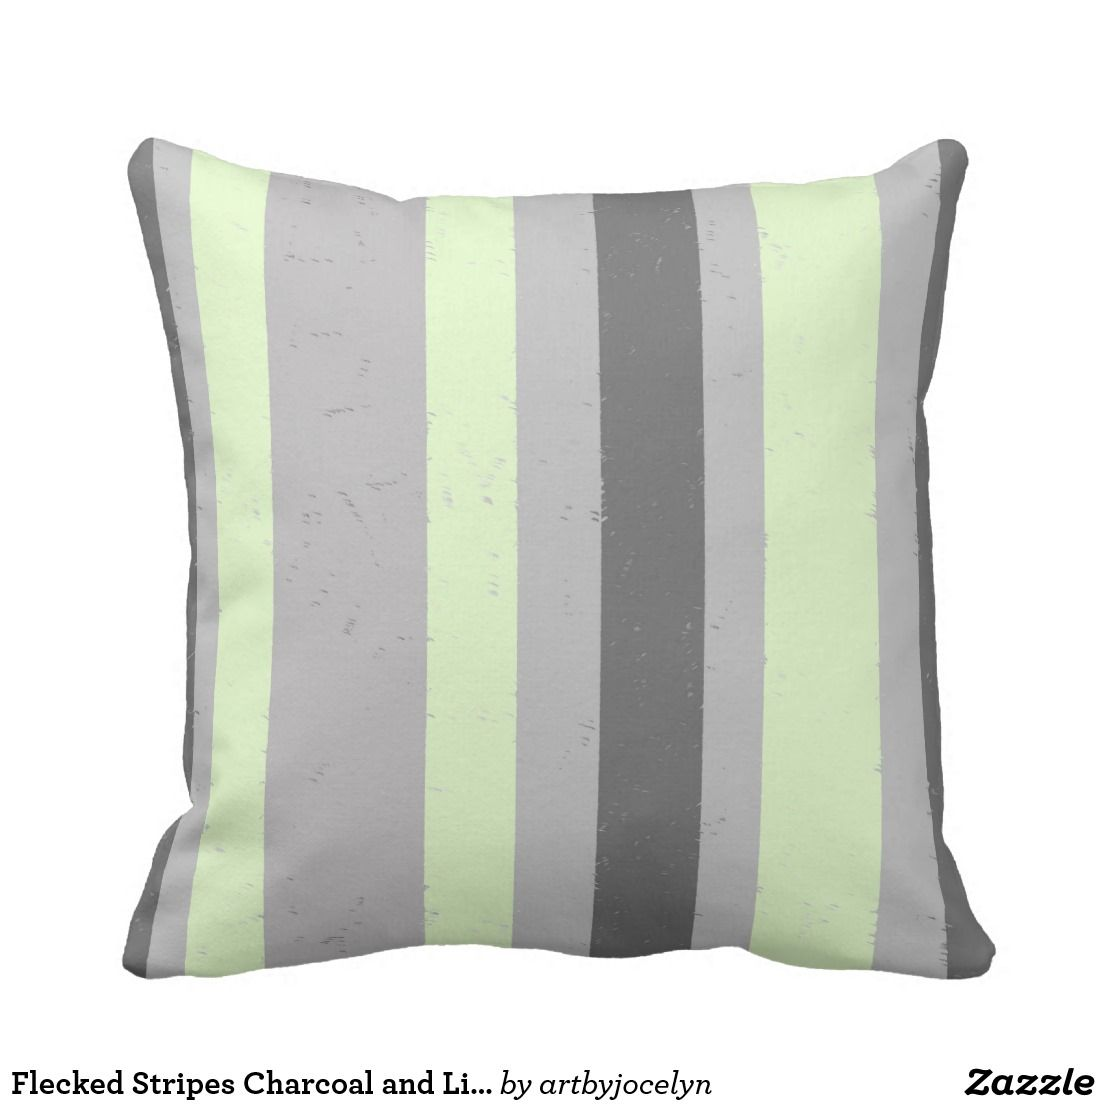 Flecked stripes charcoal and light grey mint green throw pillow in